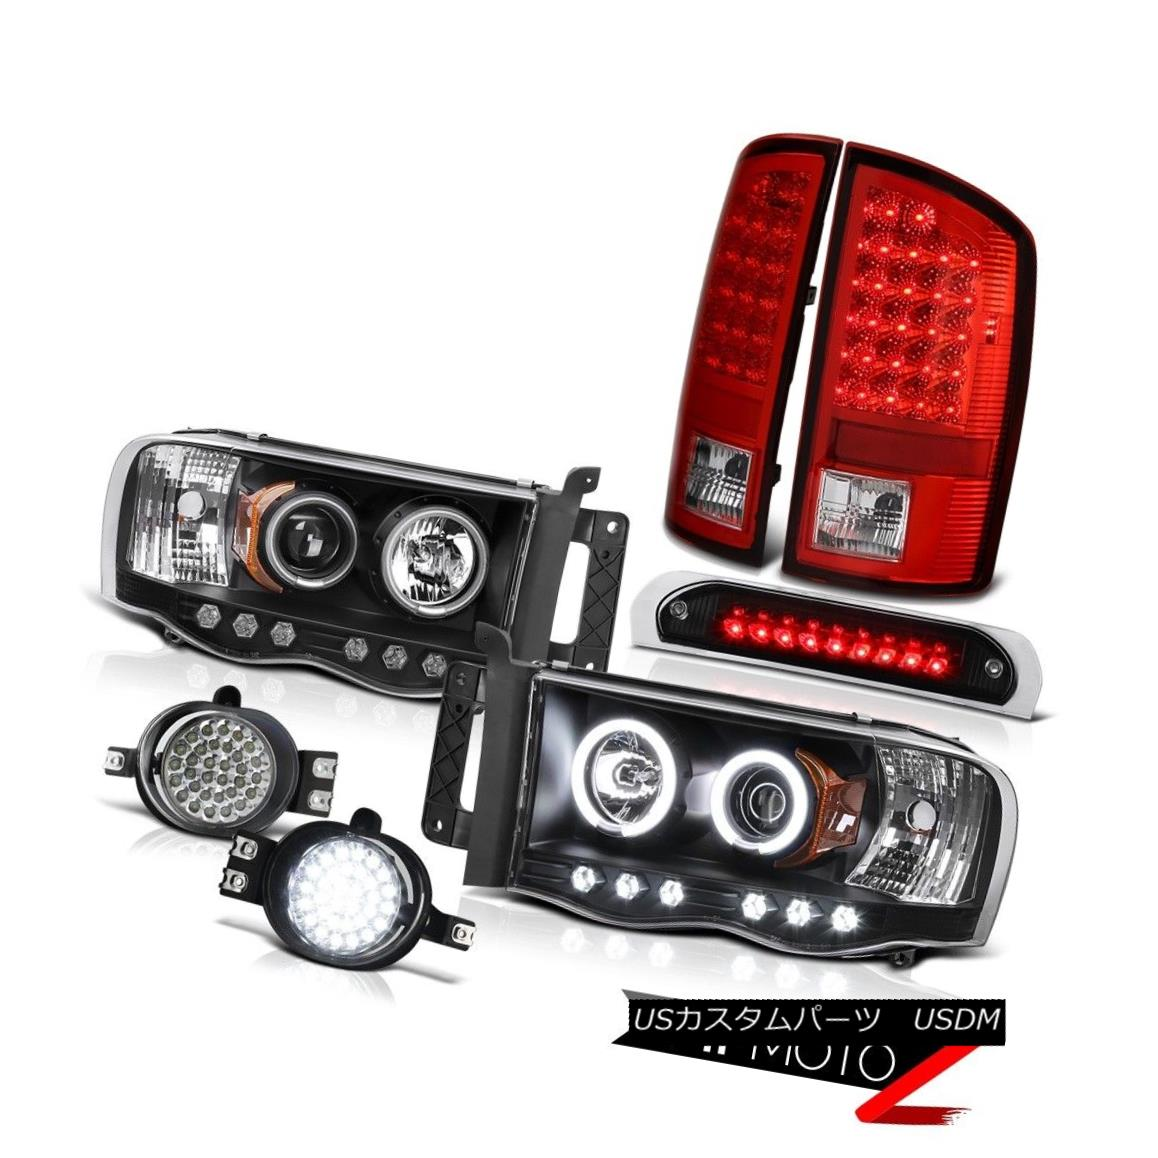 ヘッドライト 2002-2005 Ram 1500 Devil CCFL Ring Headlight LED Tail Lights Fog 3rd Brake Cargo 2002-2005 Ram 1500 Devil CCFLリングヘッドライトLEDテールライトフォグ3rdブレーキカーゴ